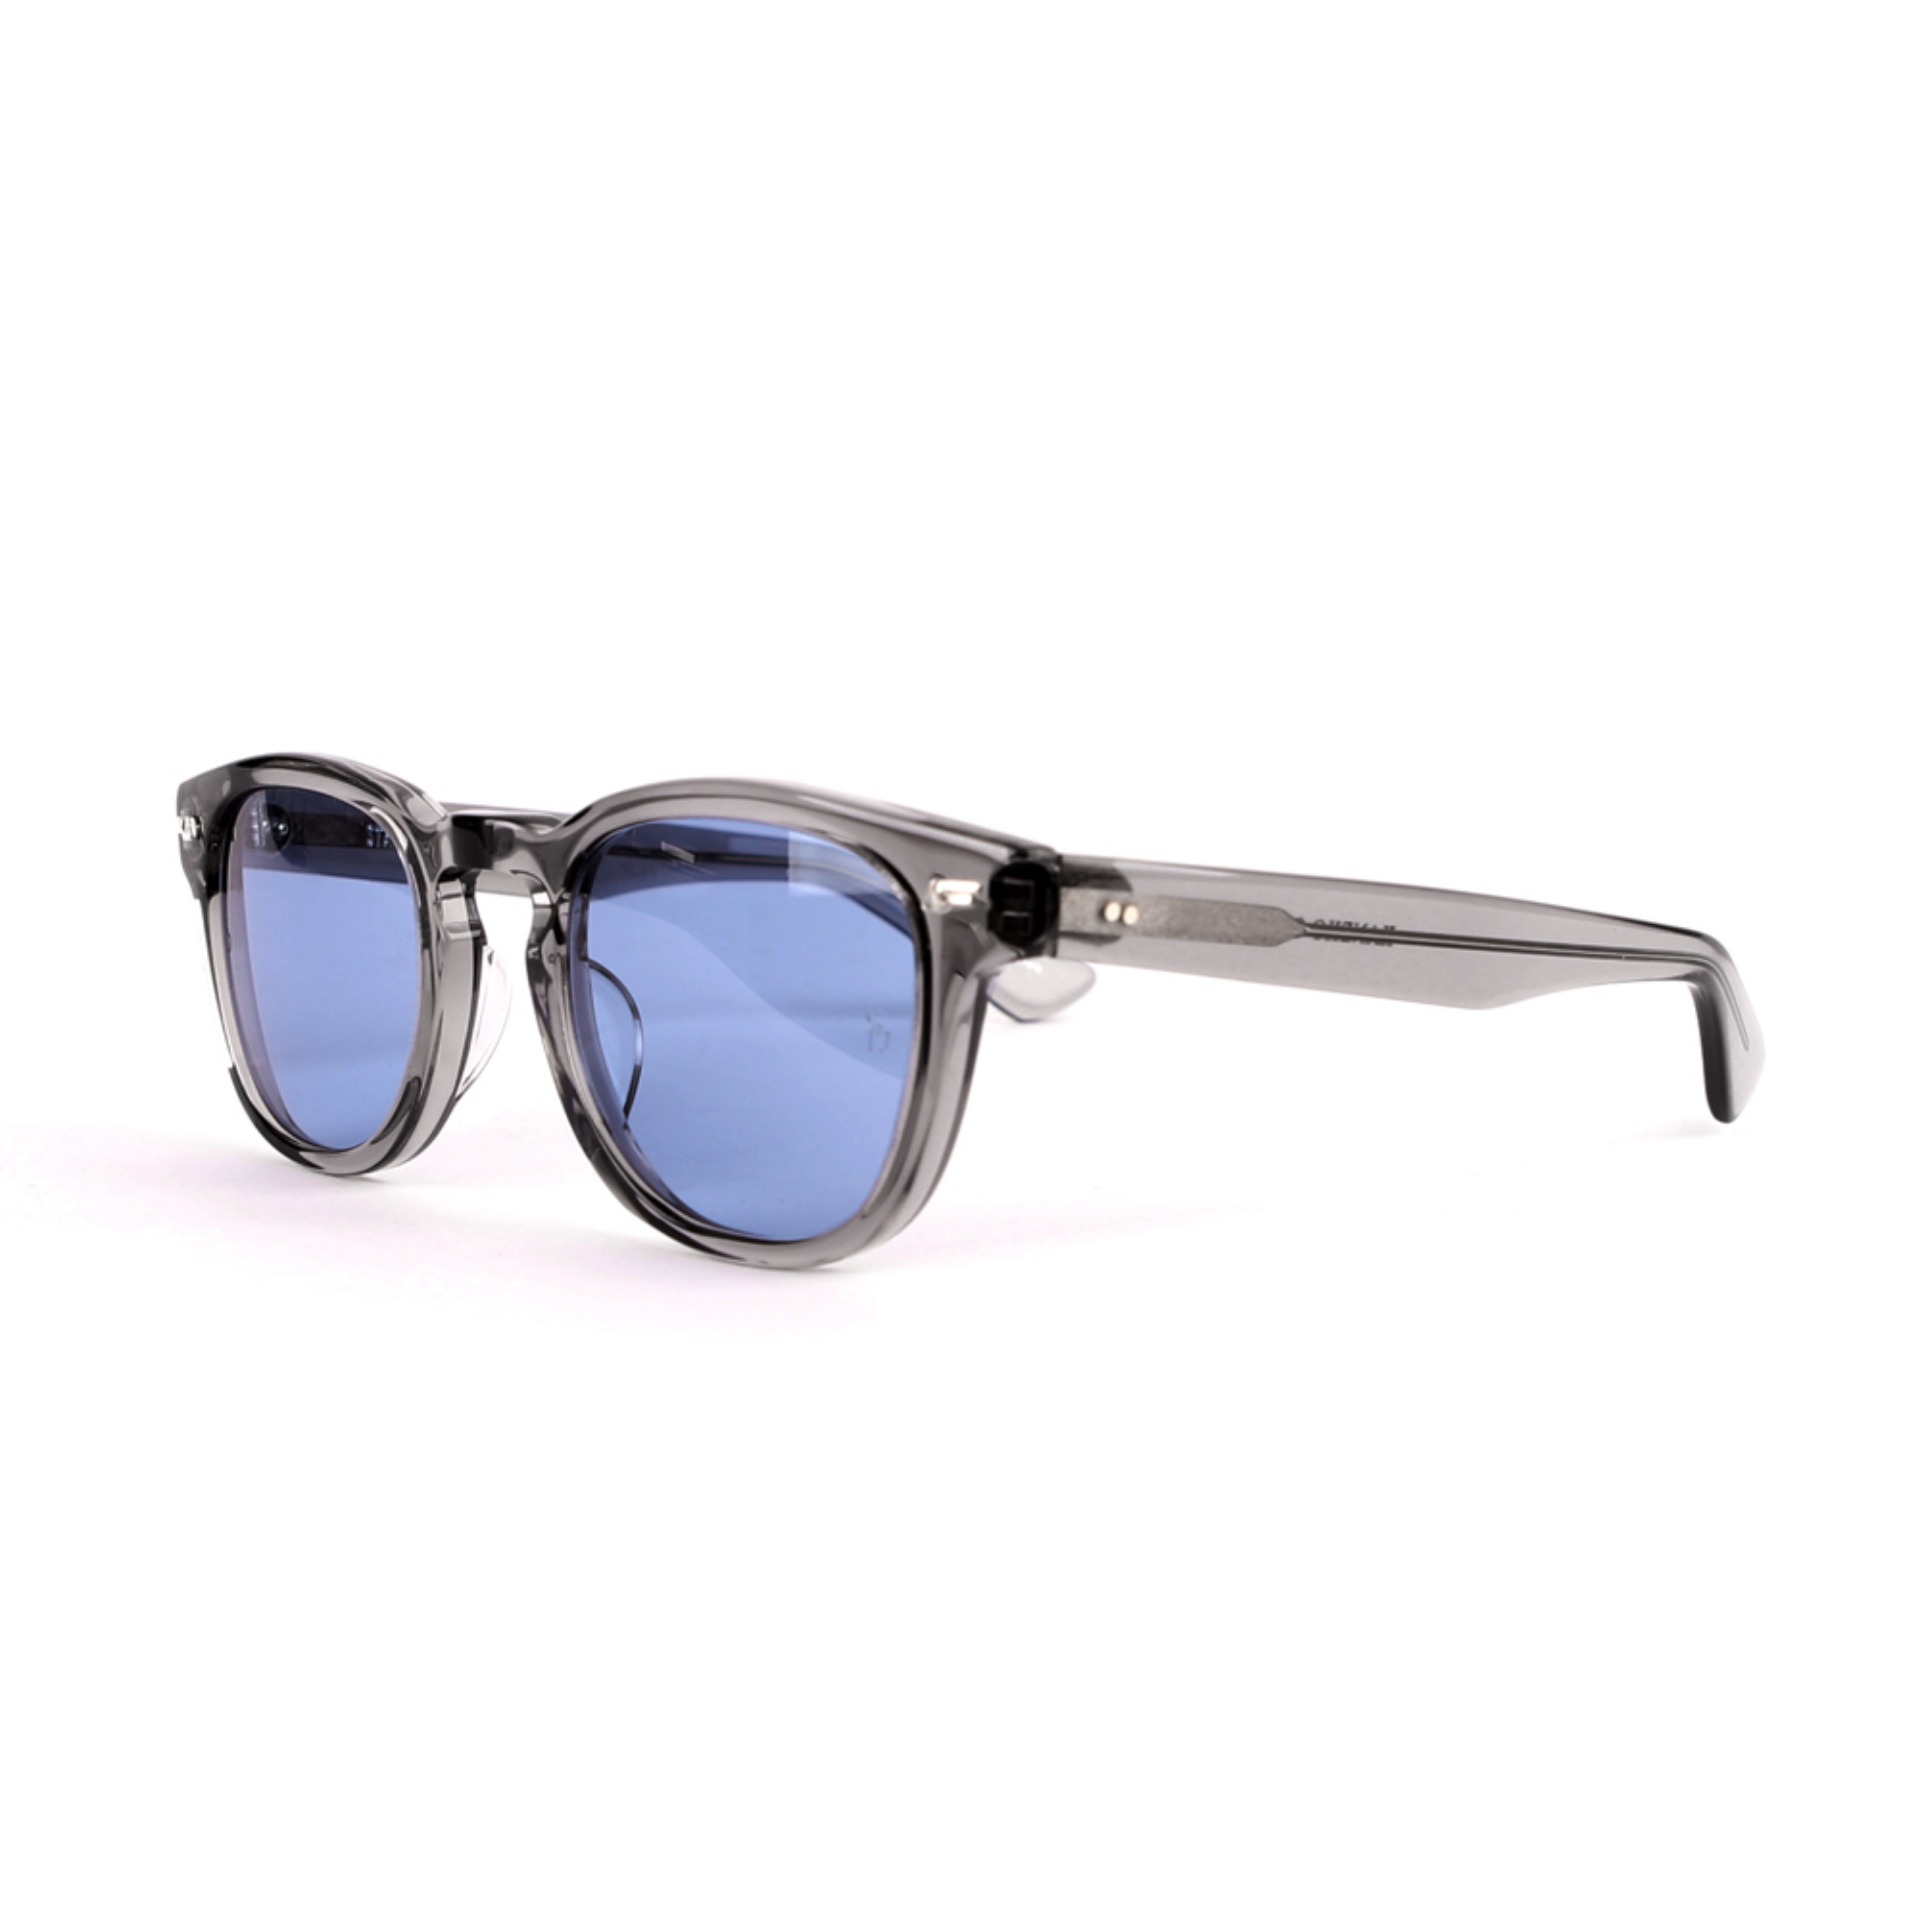 KANEKO OPTICAL X SD SUNGLASSES(GRAY X BLUE)